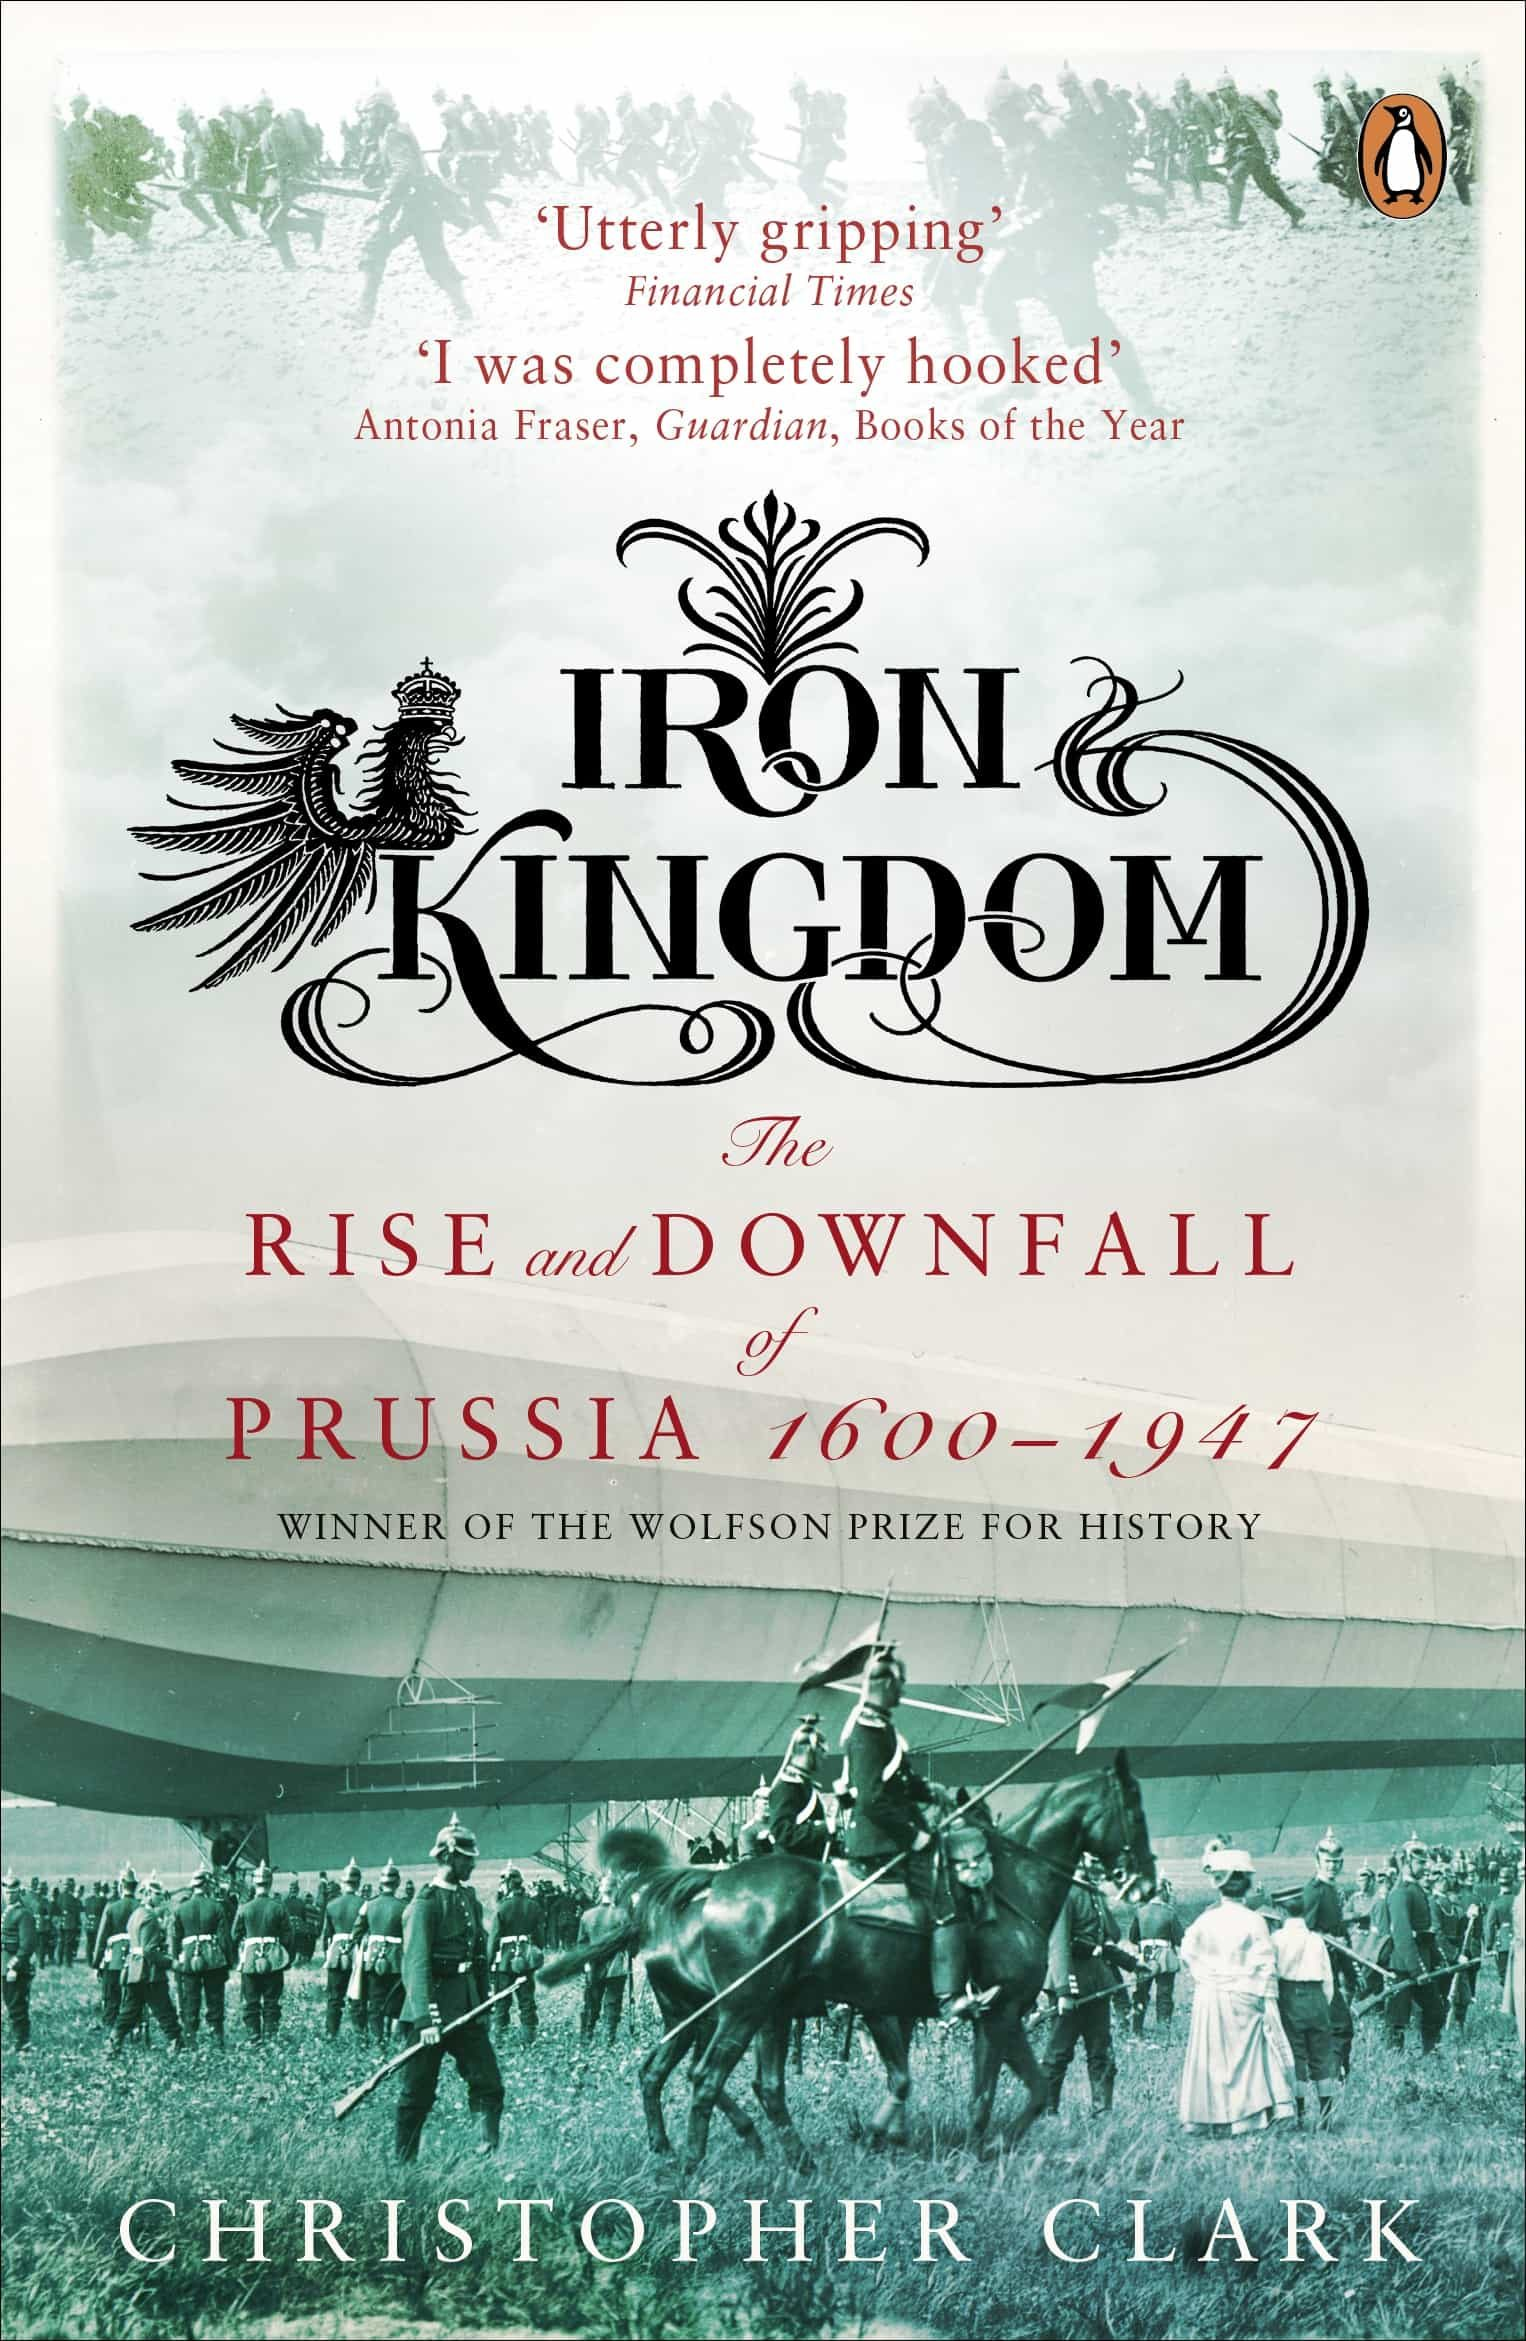 Iron Kingdom (ebook)christopher Clark9780141904023